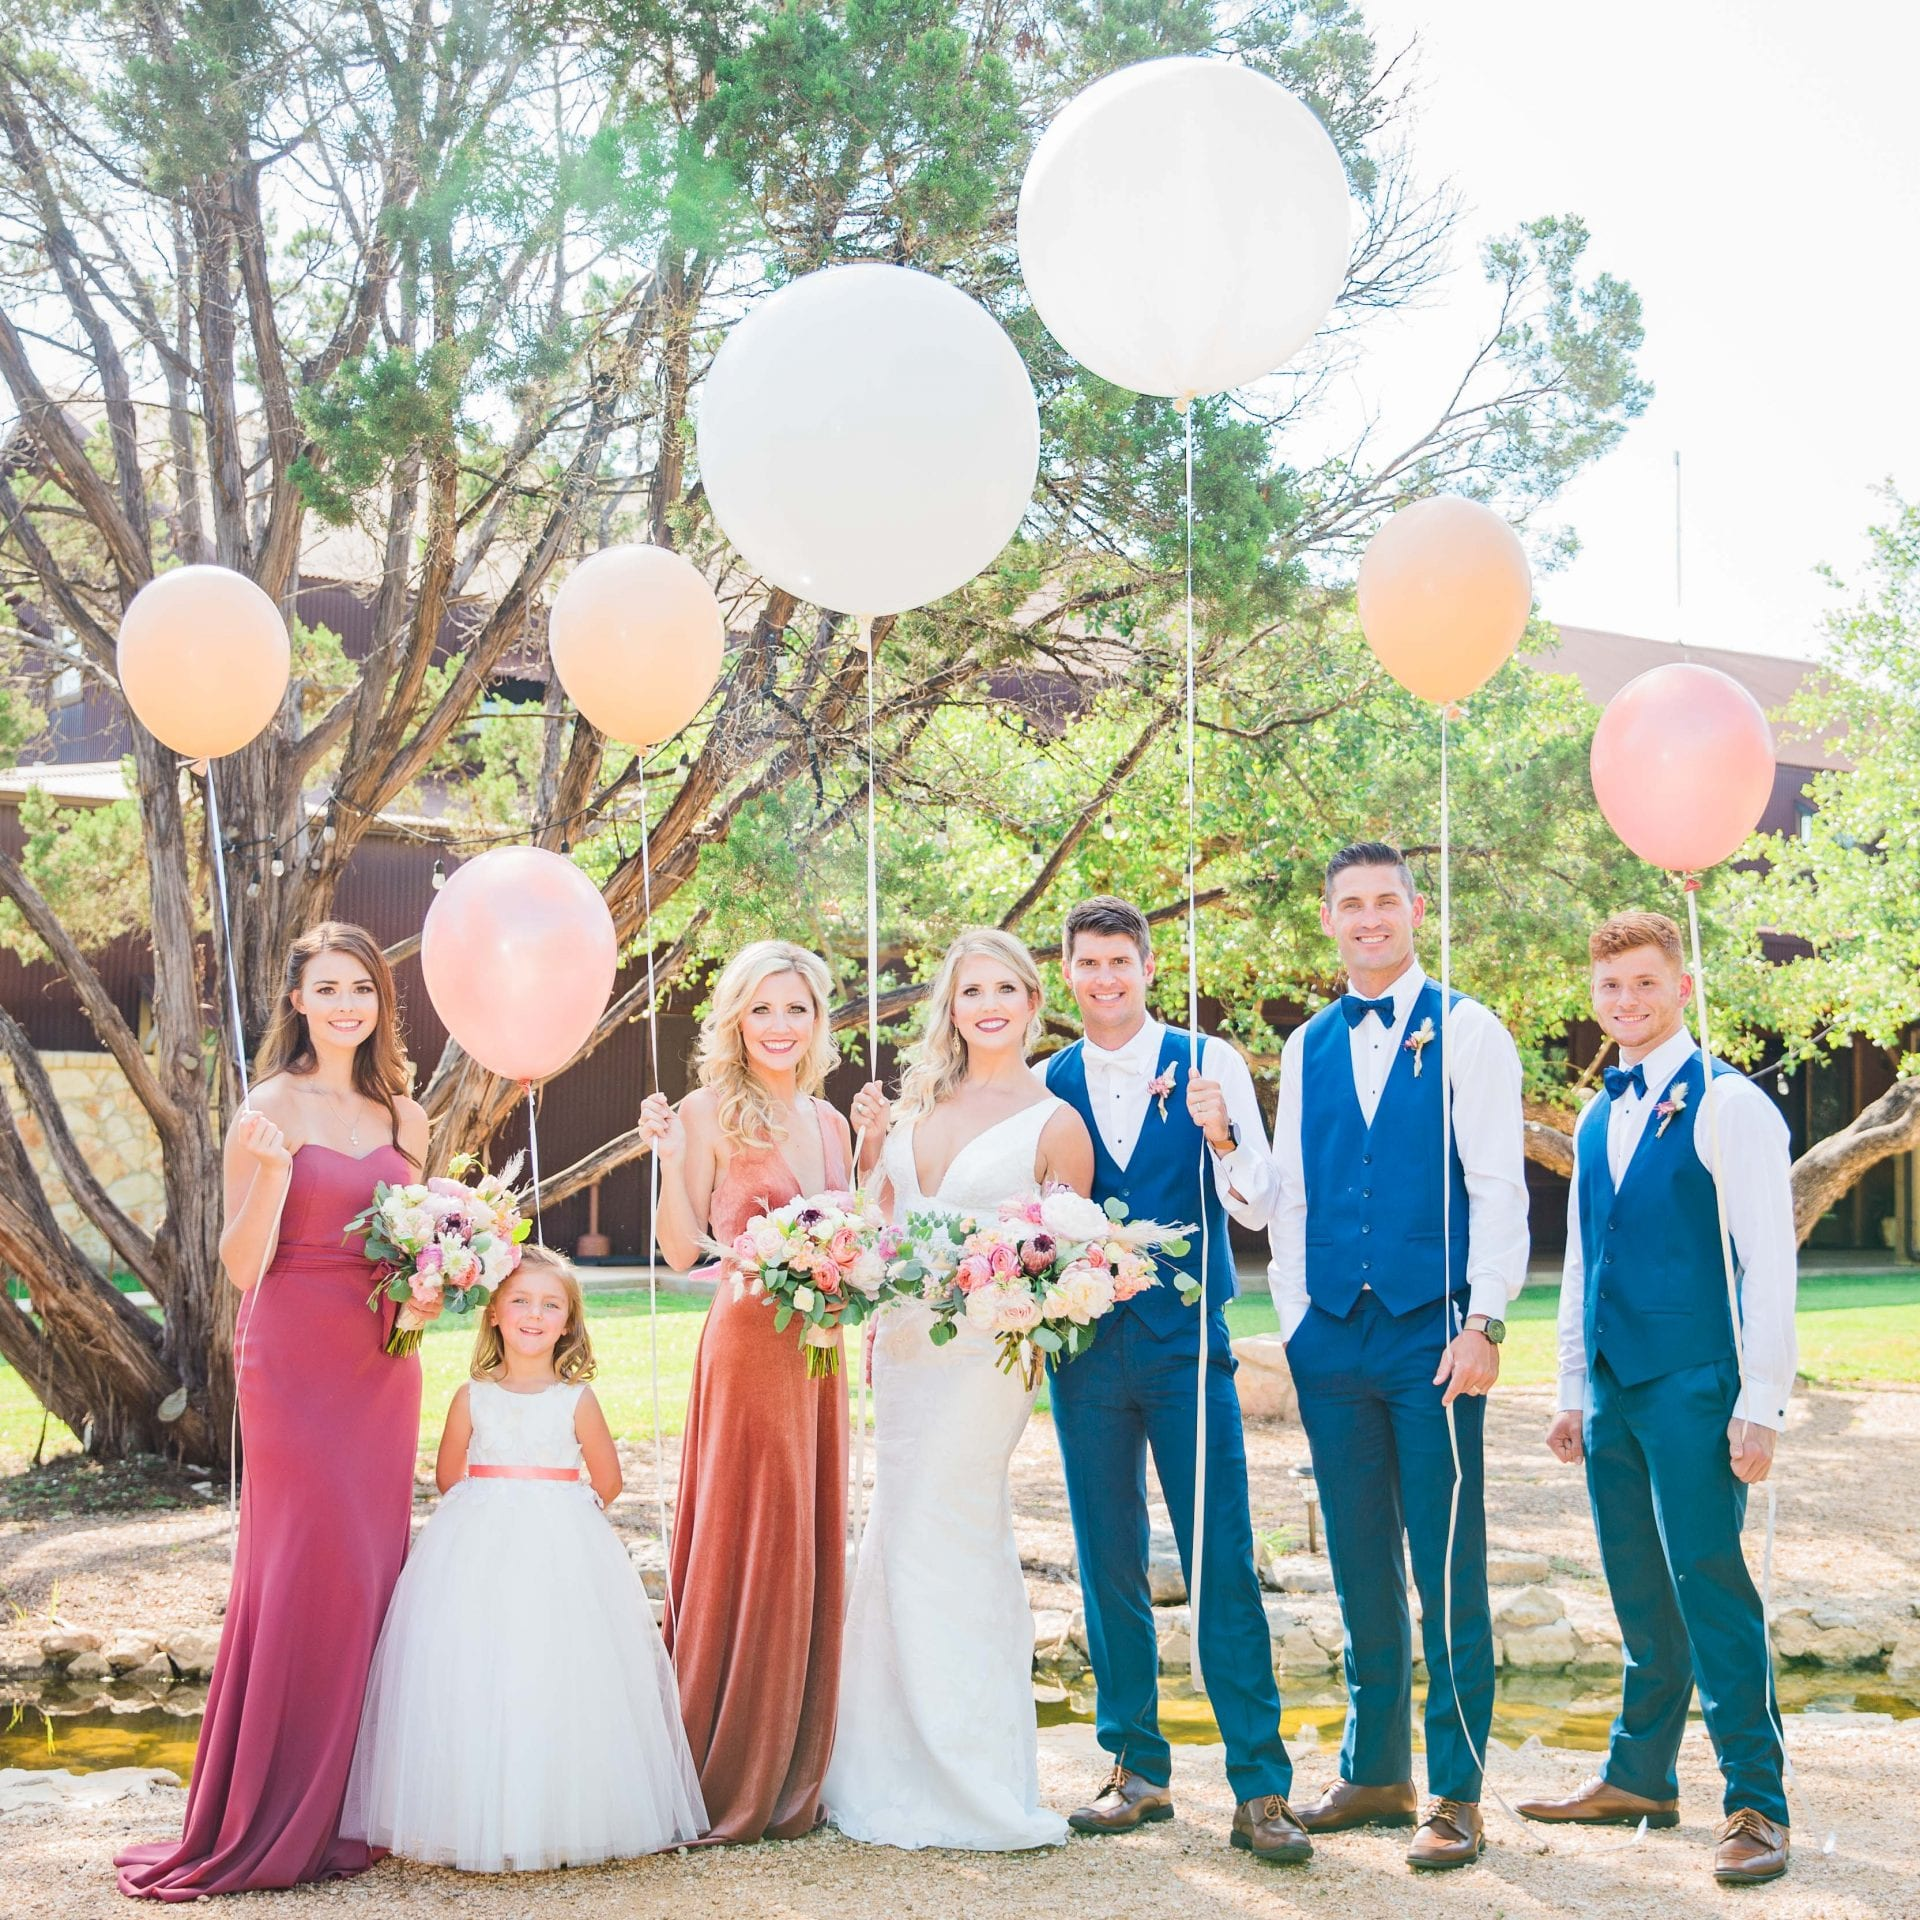 Western Sky Styled shoot party with balloons